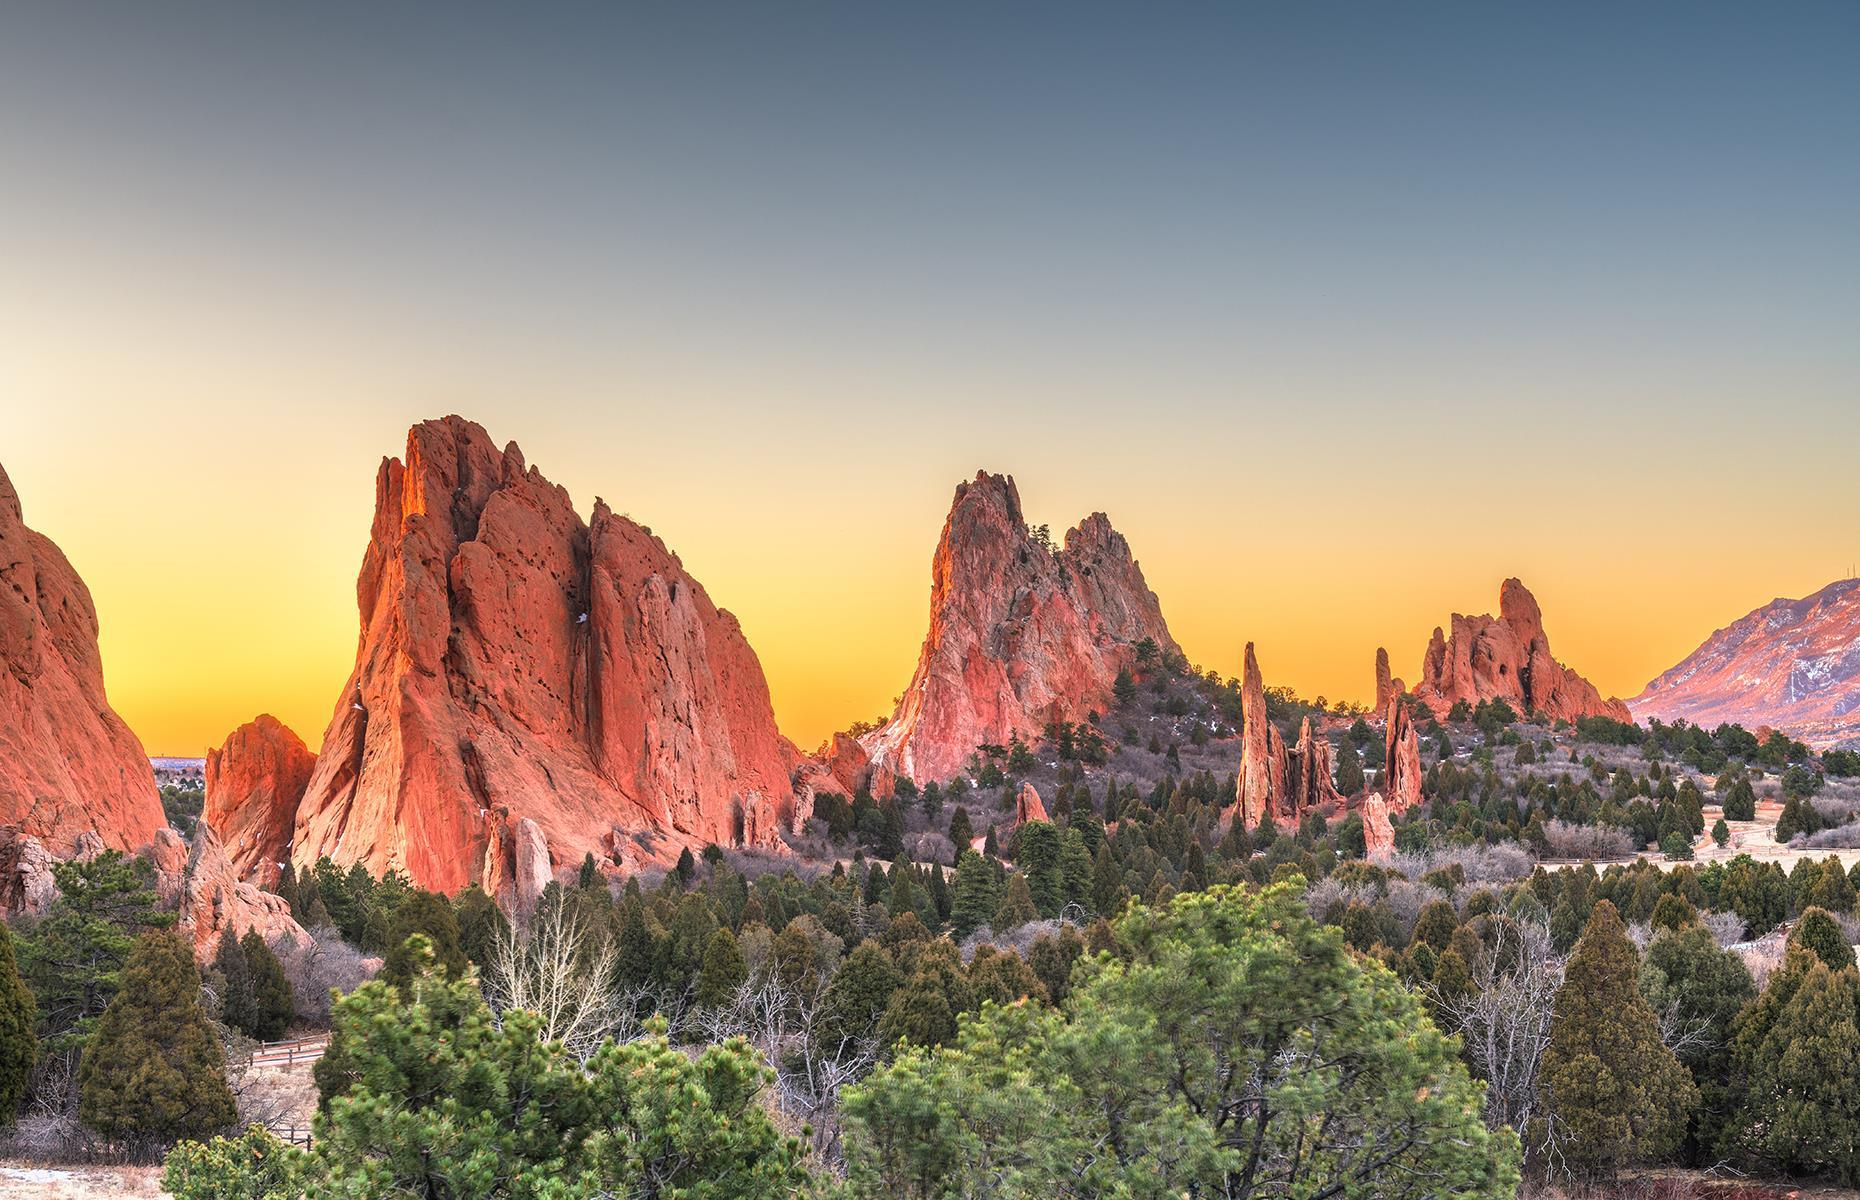 Slide 47 of 100: Garden of the Gods is an apt name for this awesome natural landmark in central Colorado. The sandstone formations here dot the park's 1,300-acre expanse like rocky red castles, and were formed over a course of about 300 million years. The 14,115-foot (4,302m) mountain Pikes Peak presides over it all.